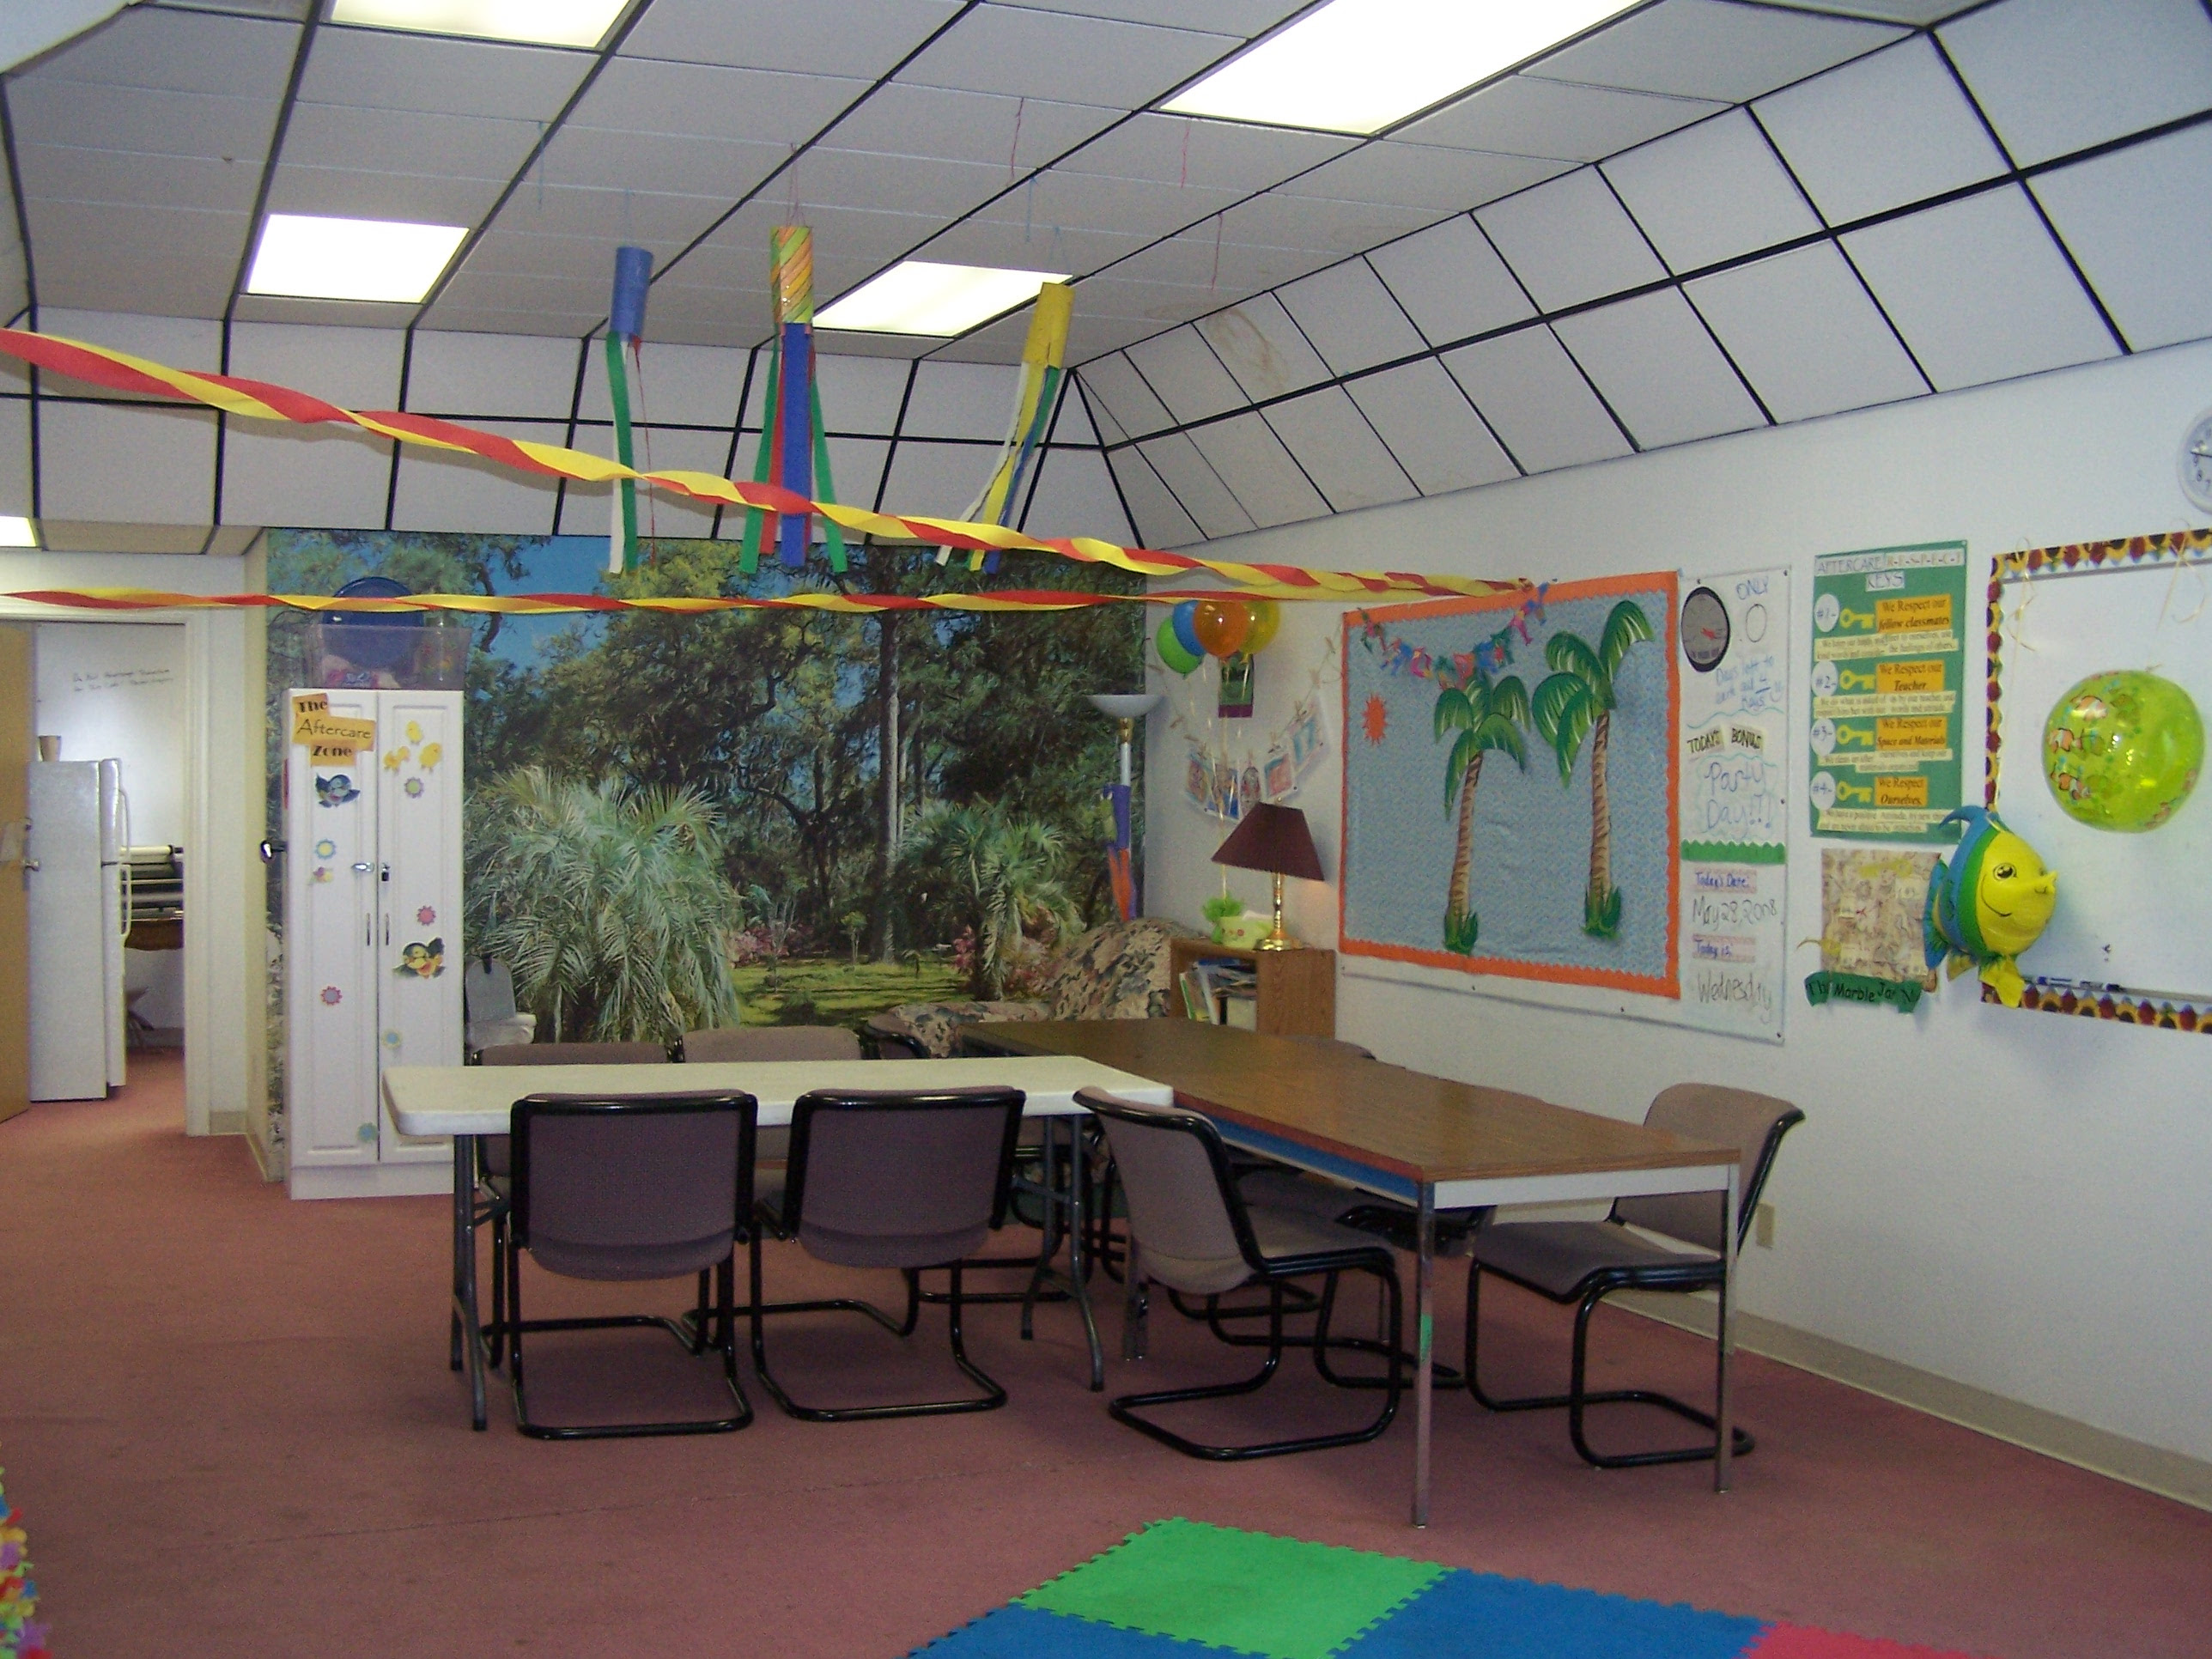 Design Classroom Decorating Ideas ~ Classroom decorating ideas dream house experience